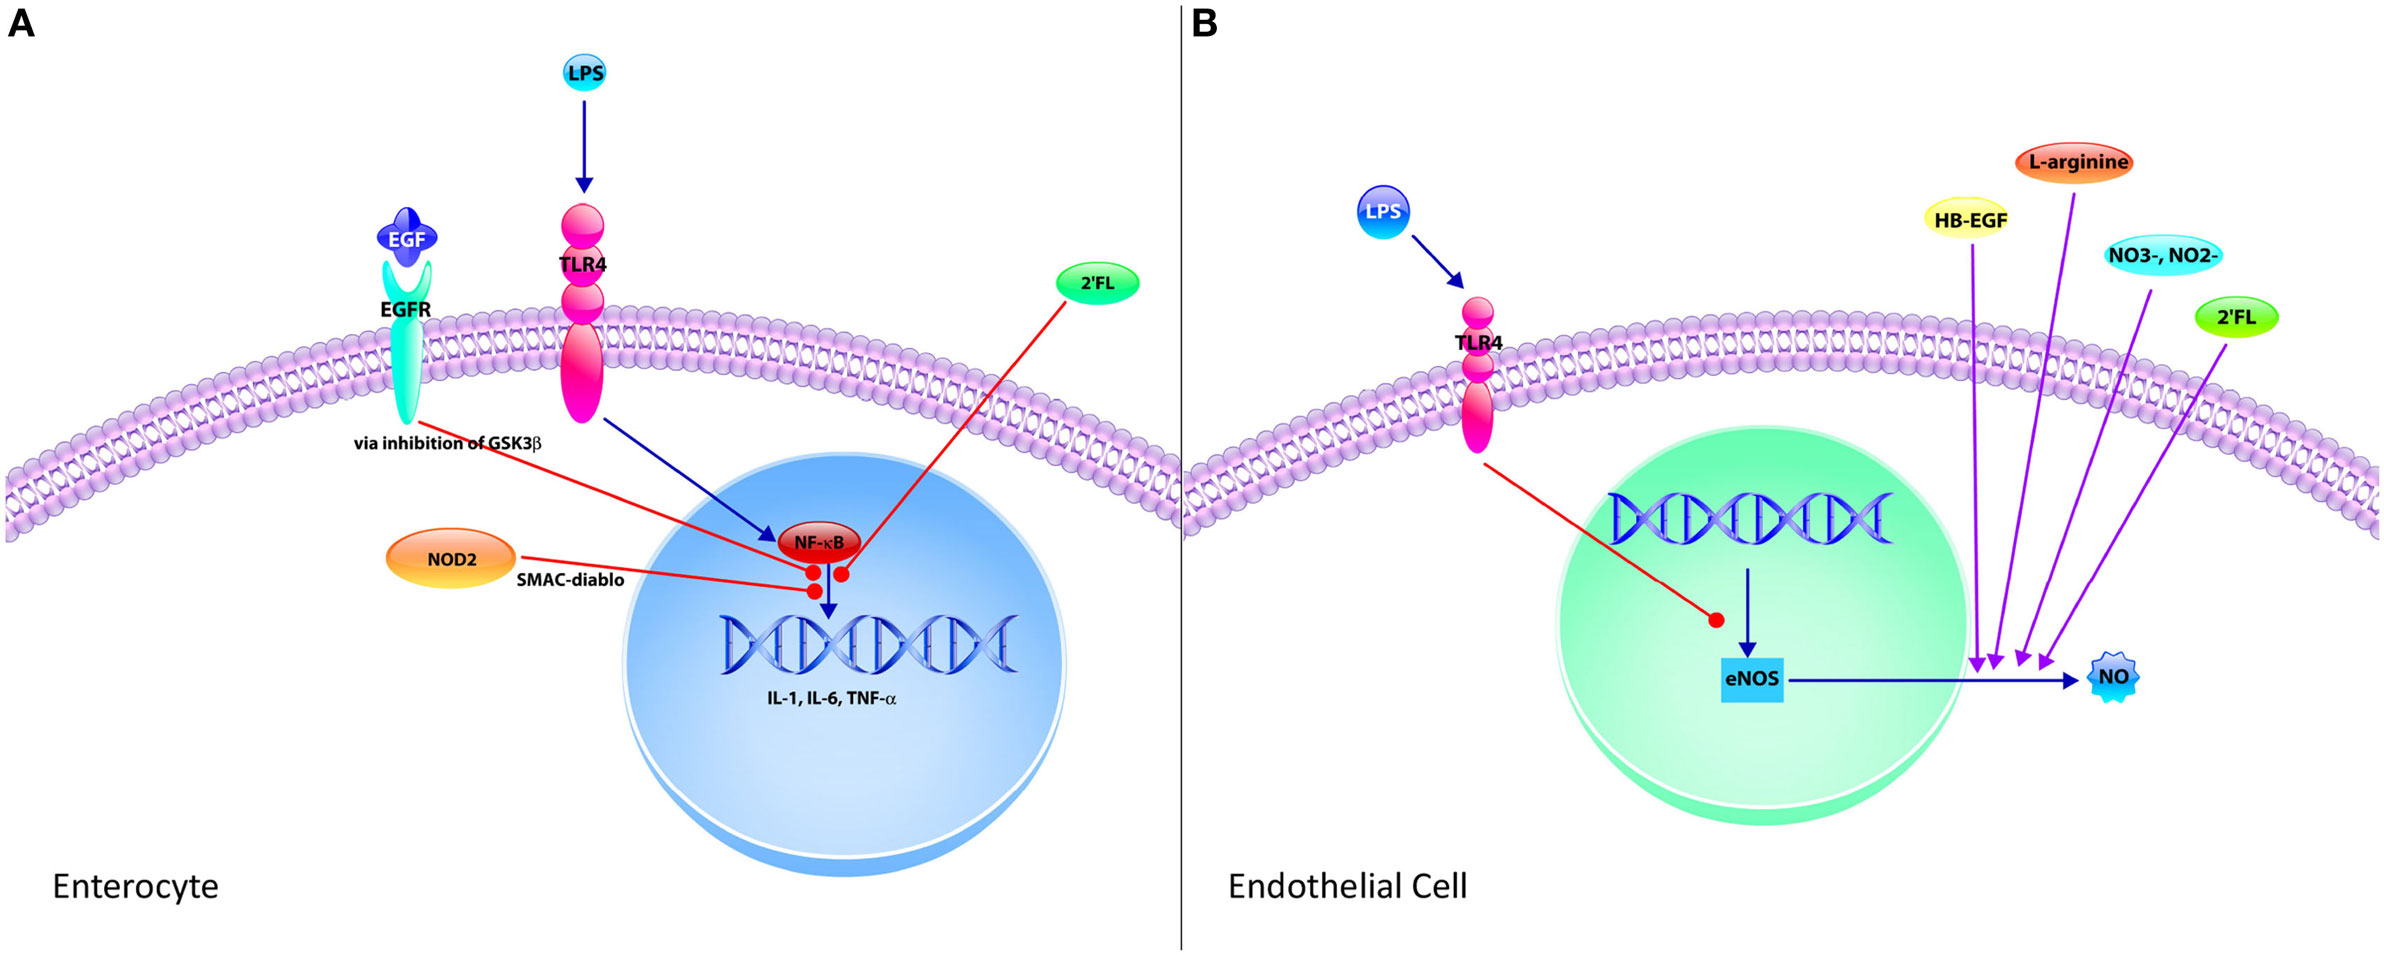 Frontiers | The Role of Mucosal Immunity in the Pathogenesis